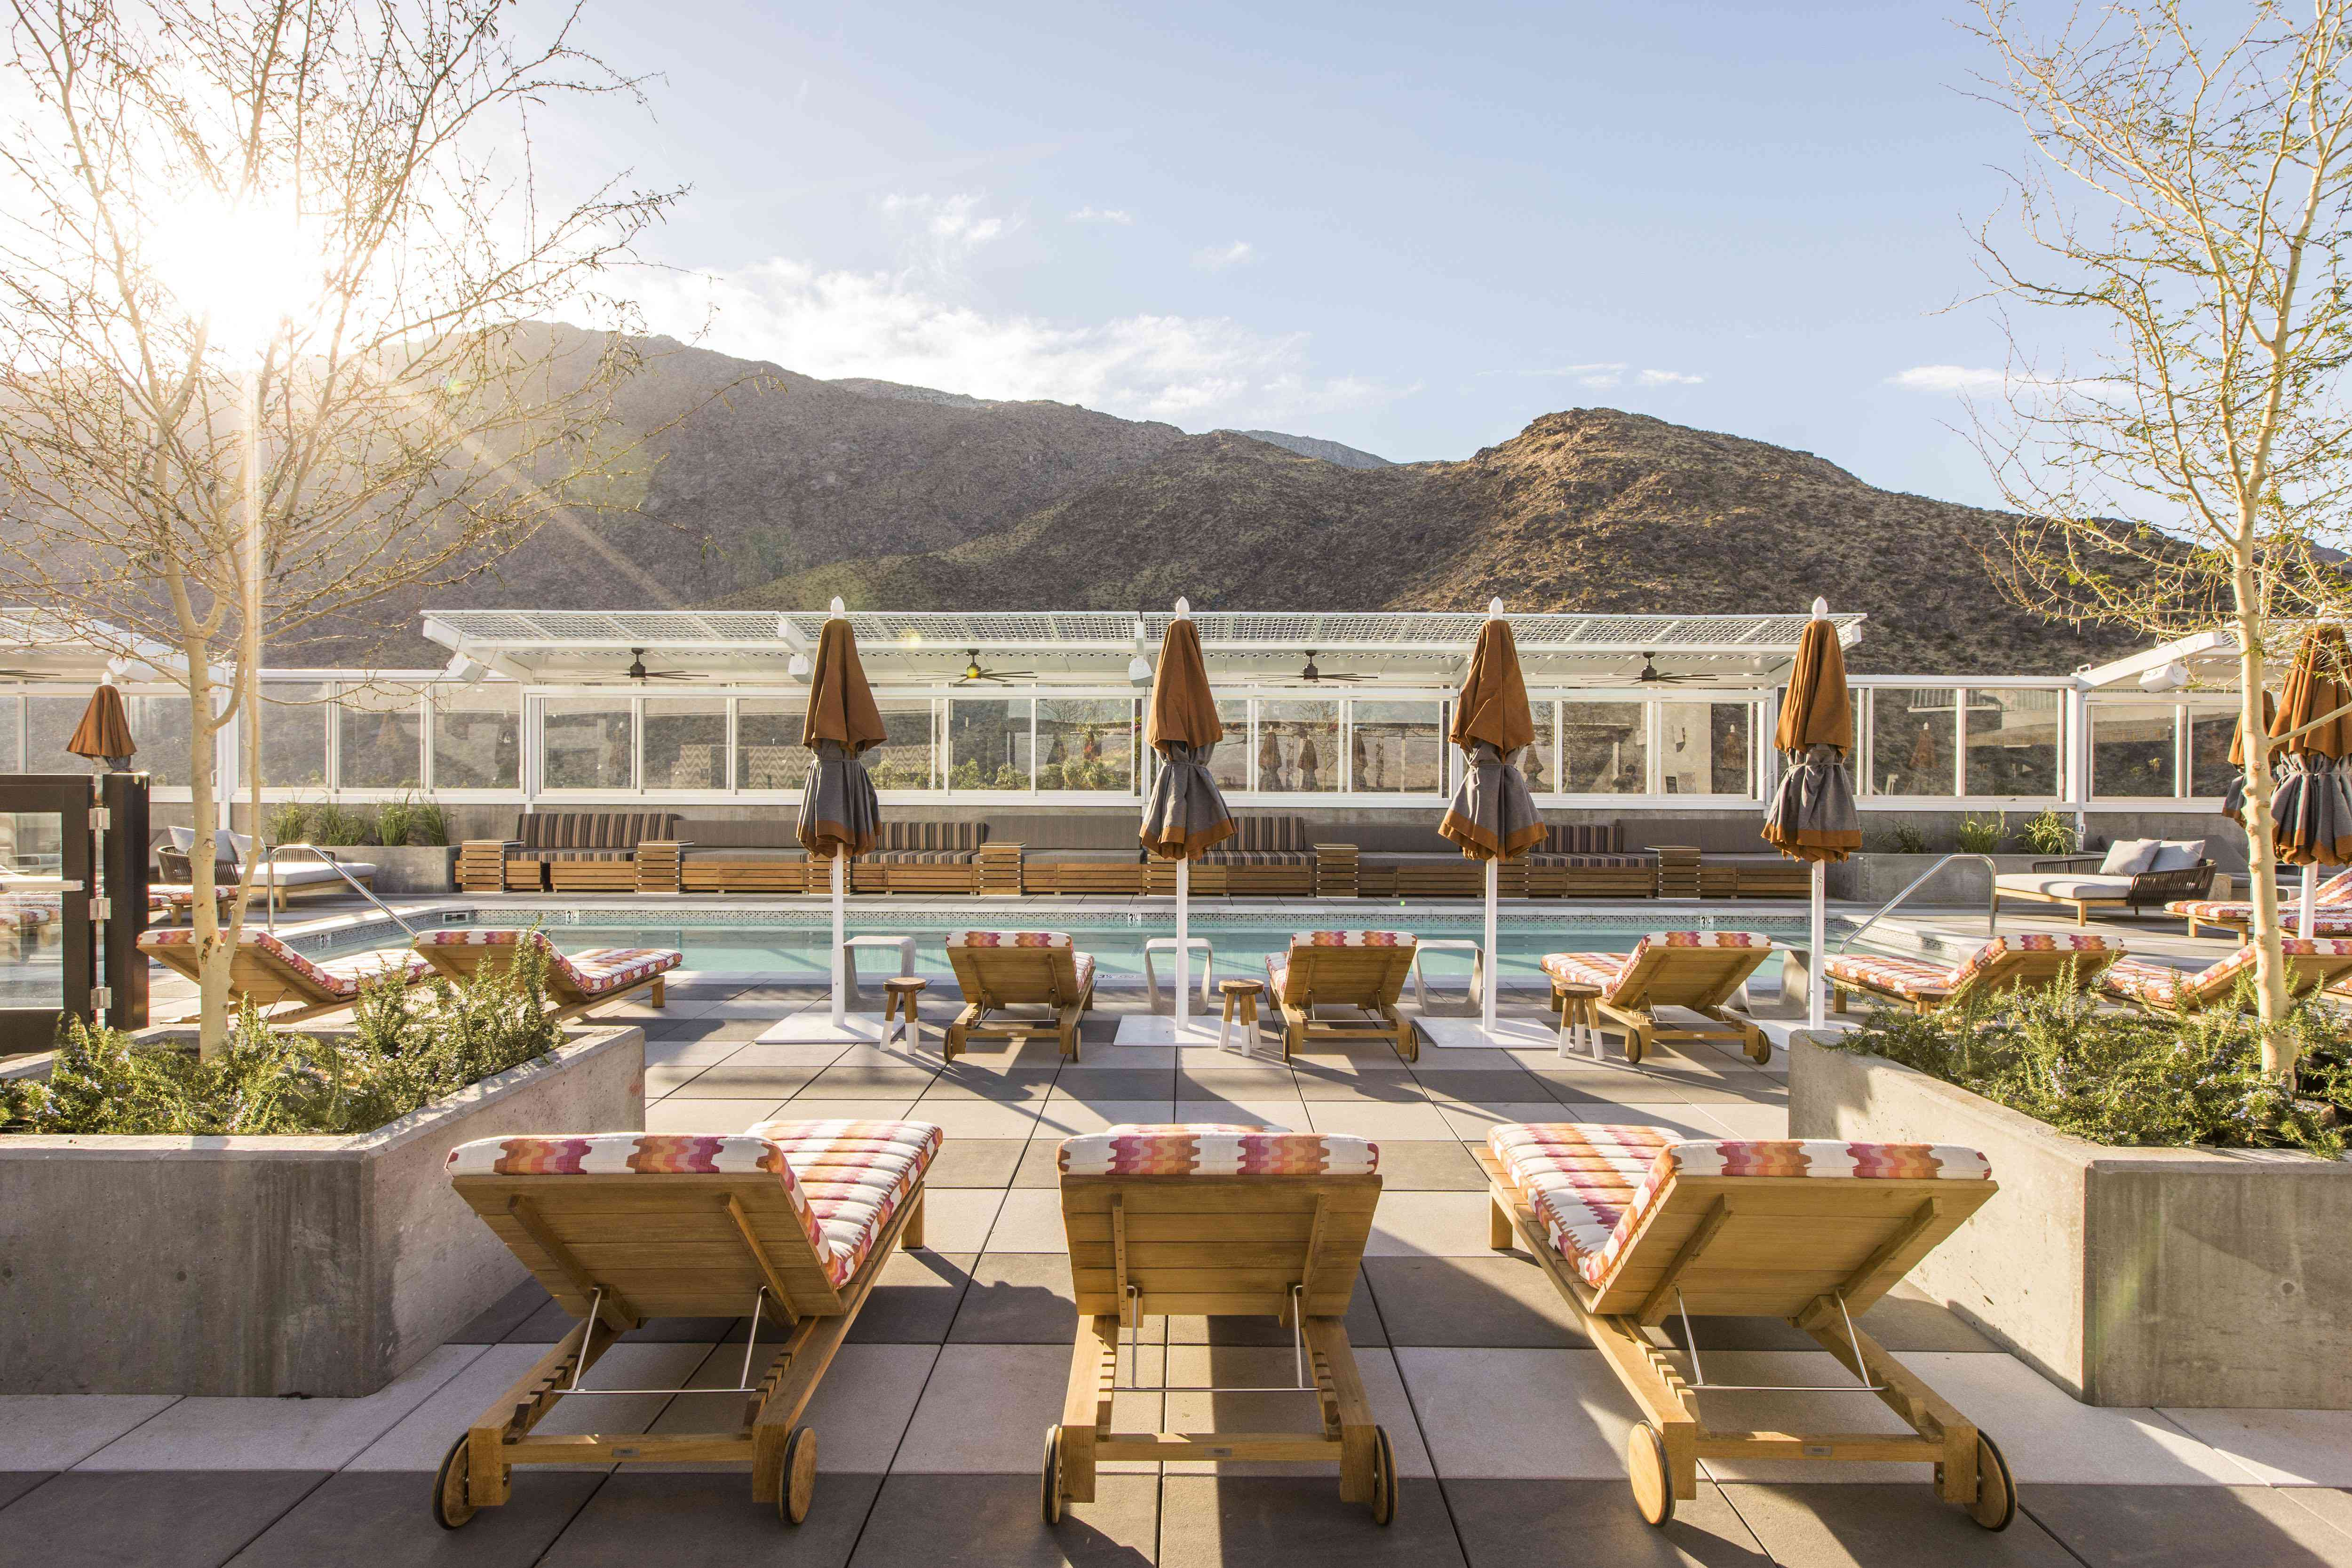 Rooftop pool at Kimpton The Rowan overlooking the mountains in Palm Springs